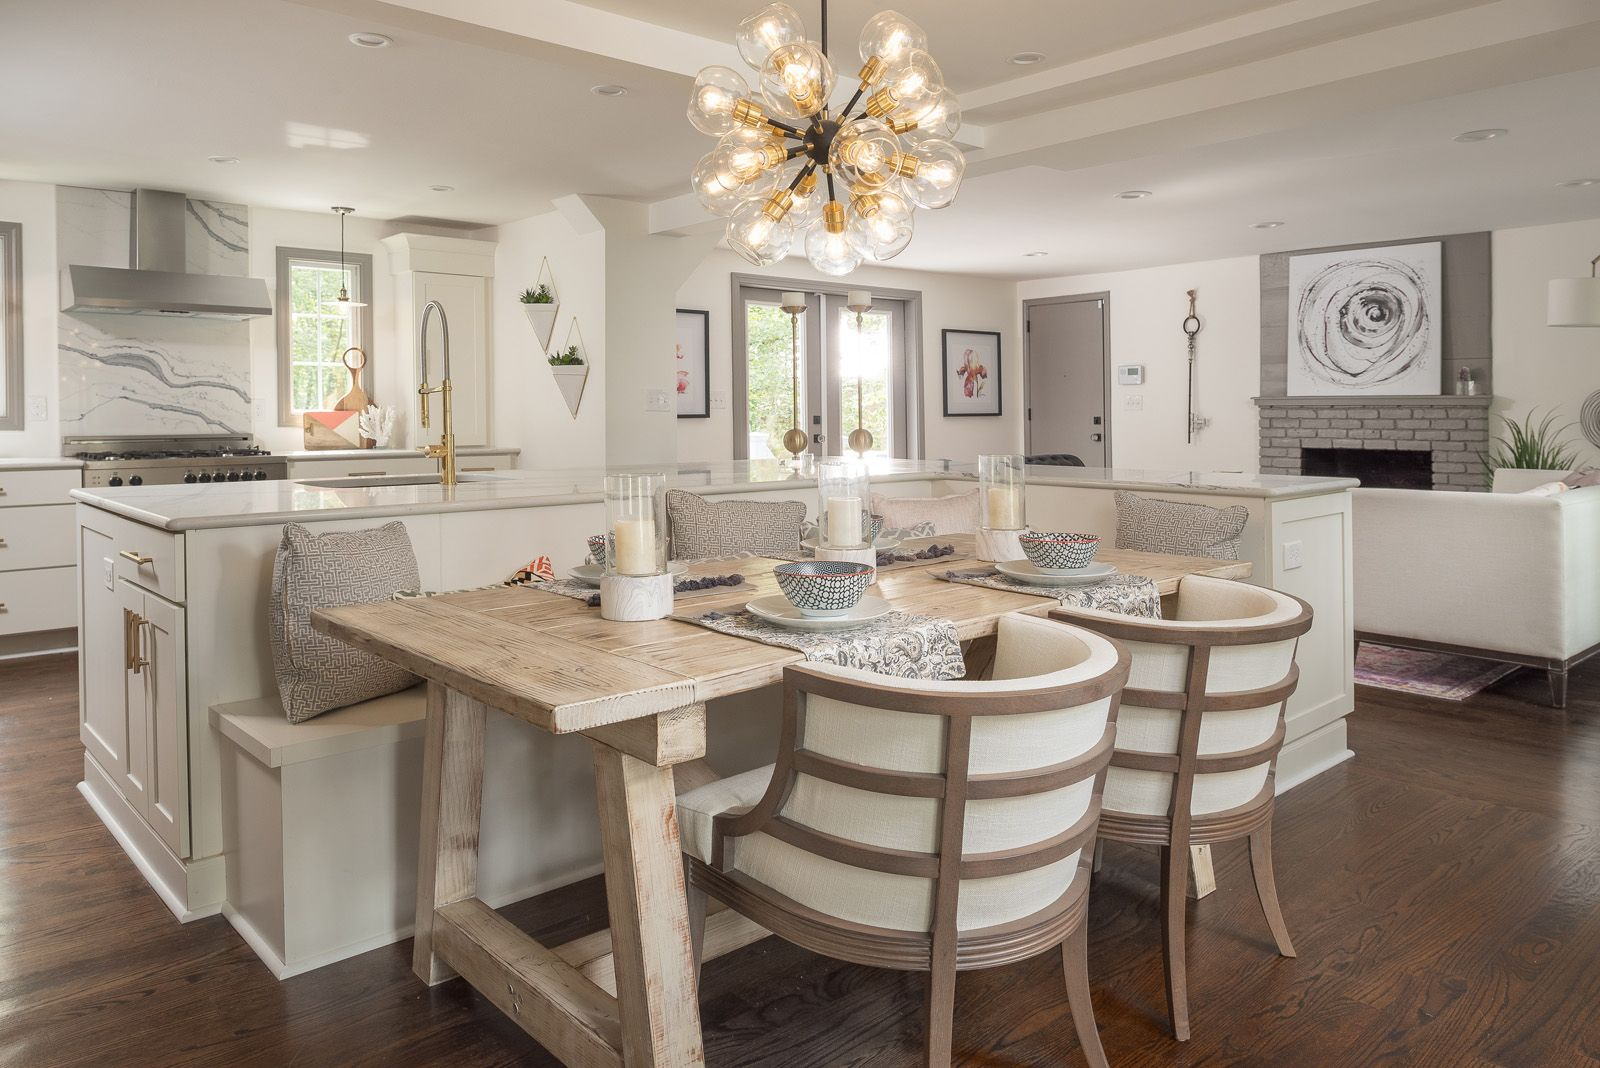 Wide Open Kitchen with Custom Built-In Banquette Seating